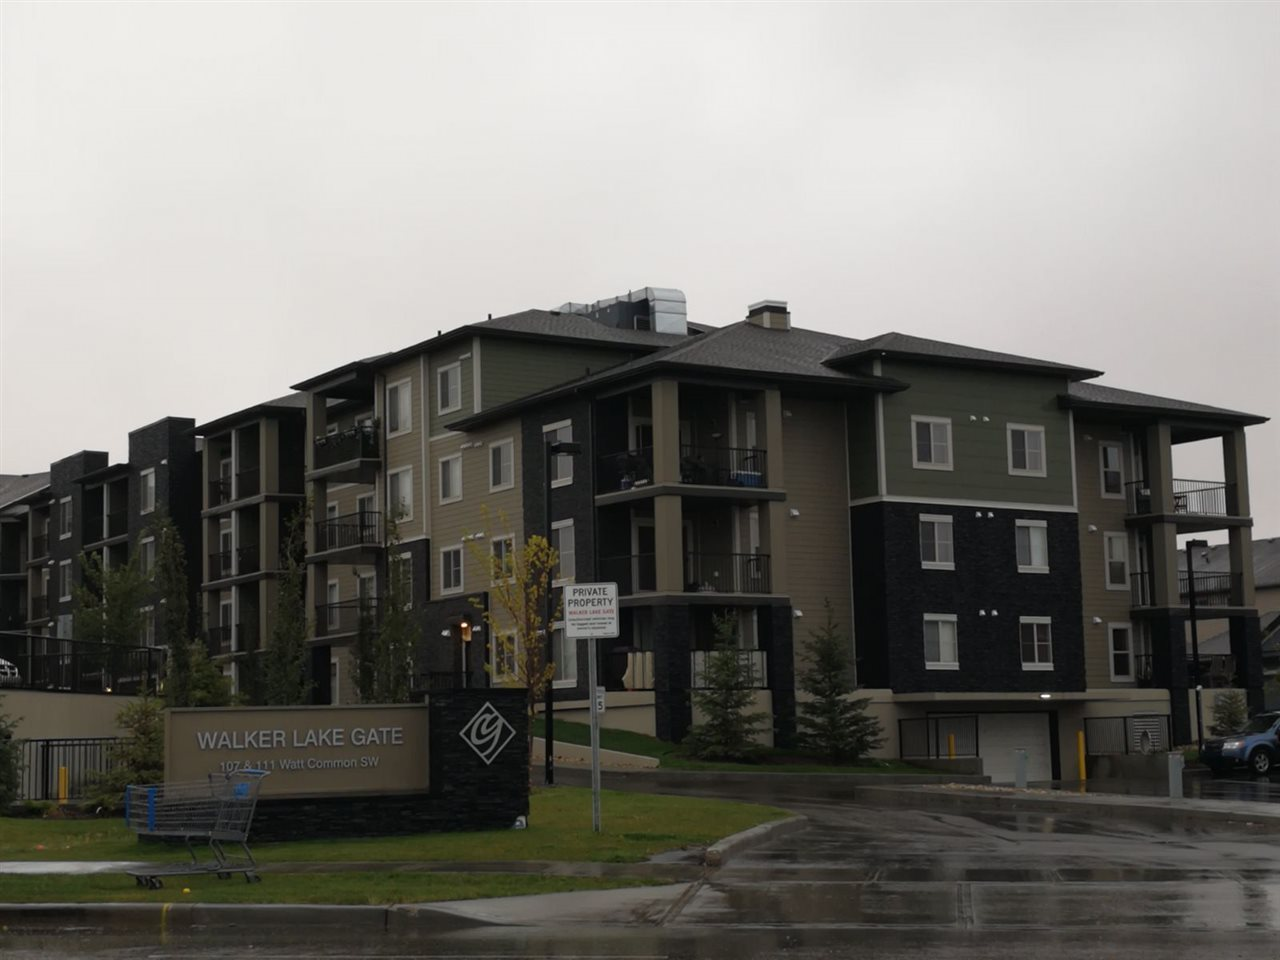 JUST LIKE NEW...This 2 bedroom+ den  2 bathroom 812sq ft condo has been meticulously cared for by the original owners & it's fully upgraded...beautiful GRANITE countertops, real wood cabinet, modern light fixtures,and high end appliance package..! Located at 111 Watt Common SW Edmonton, right next to the Harvest Pointe Shopping Center, which feature tenants like Walmart, Petro-Canada, Sobeys, RBC and Starbucks, as well as several other restaurants and retailers. Harvest Pointe Shopping Centre also offers a number of banking options, medical and professional services. Anthony Henday Drive, Hyw 2, 50th Street, 91st Street and Ellerslie Road are all nearby which makes getting around Edmonton and to surrounding areas quick and easy. , This 3rd floor level suite offers a unique covered patio , perfect for relaxing & BBQ. Great for Investment and first time home buyers. The building is fully secured with fob system and cameras. Includes 2 underground titled parking stall.